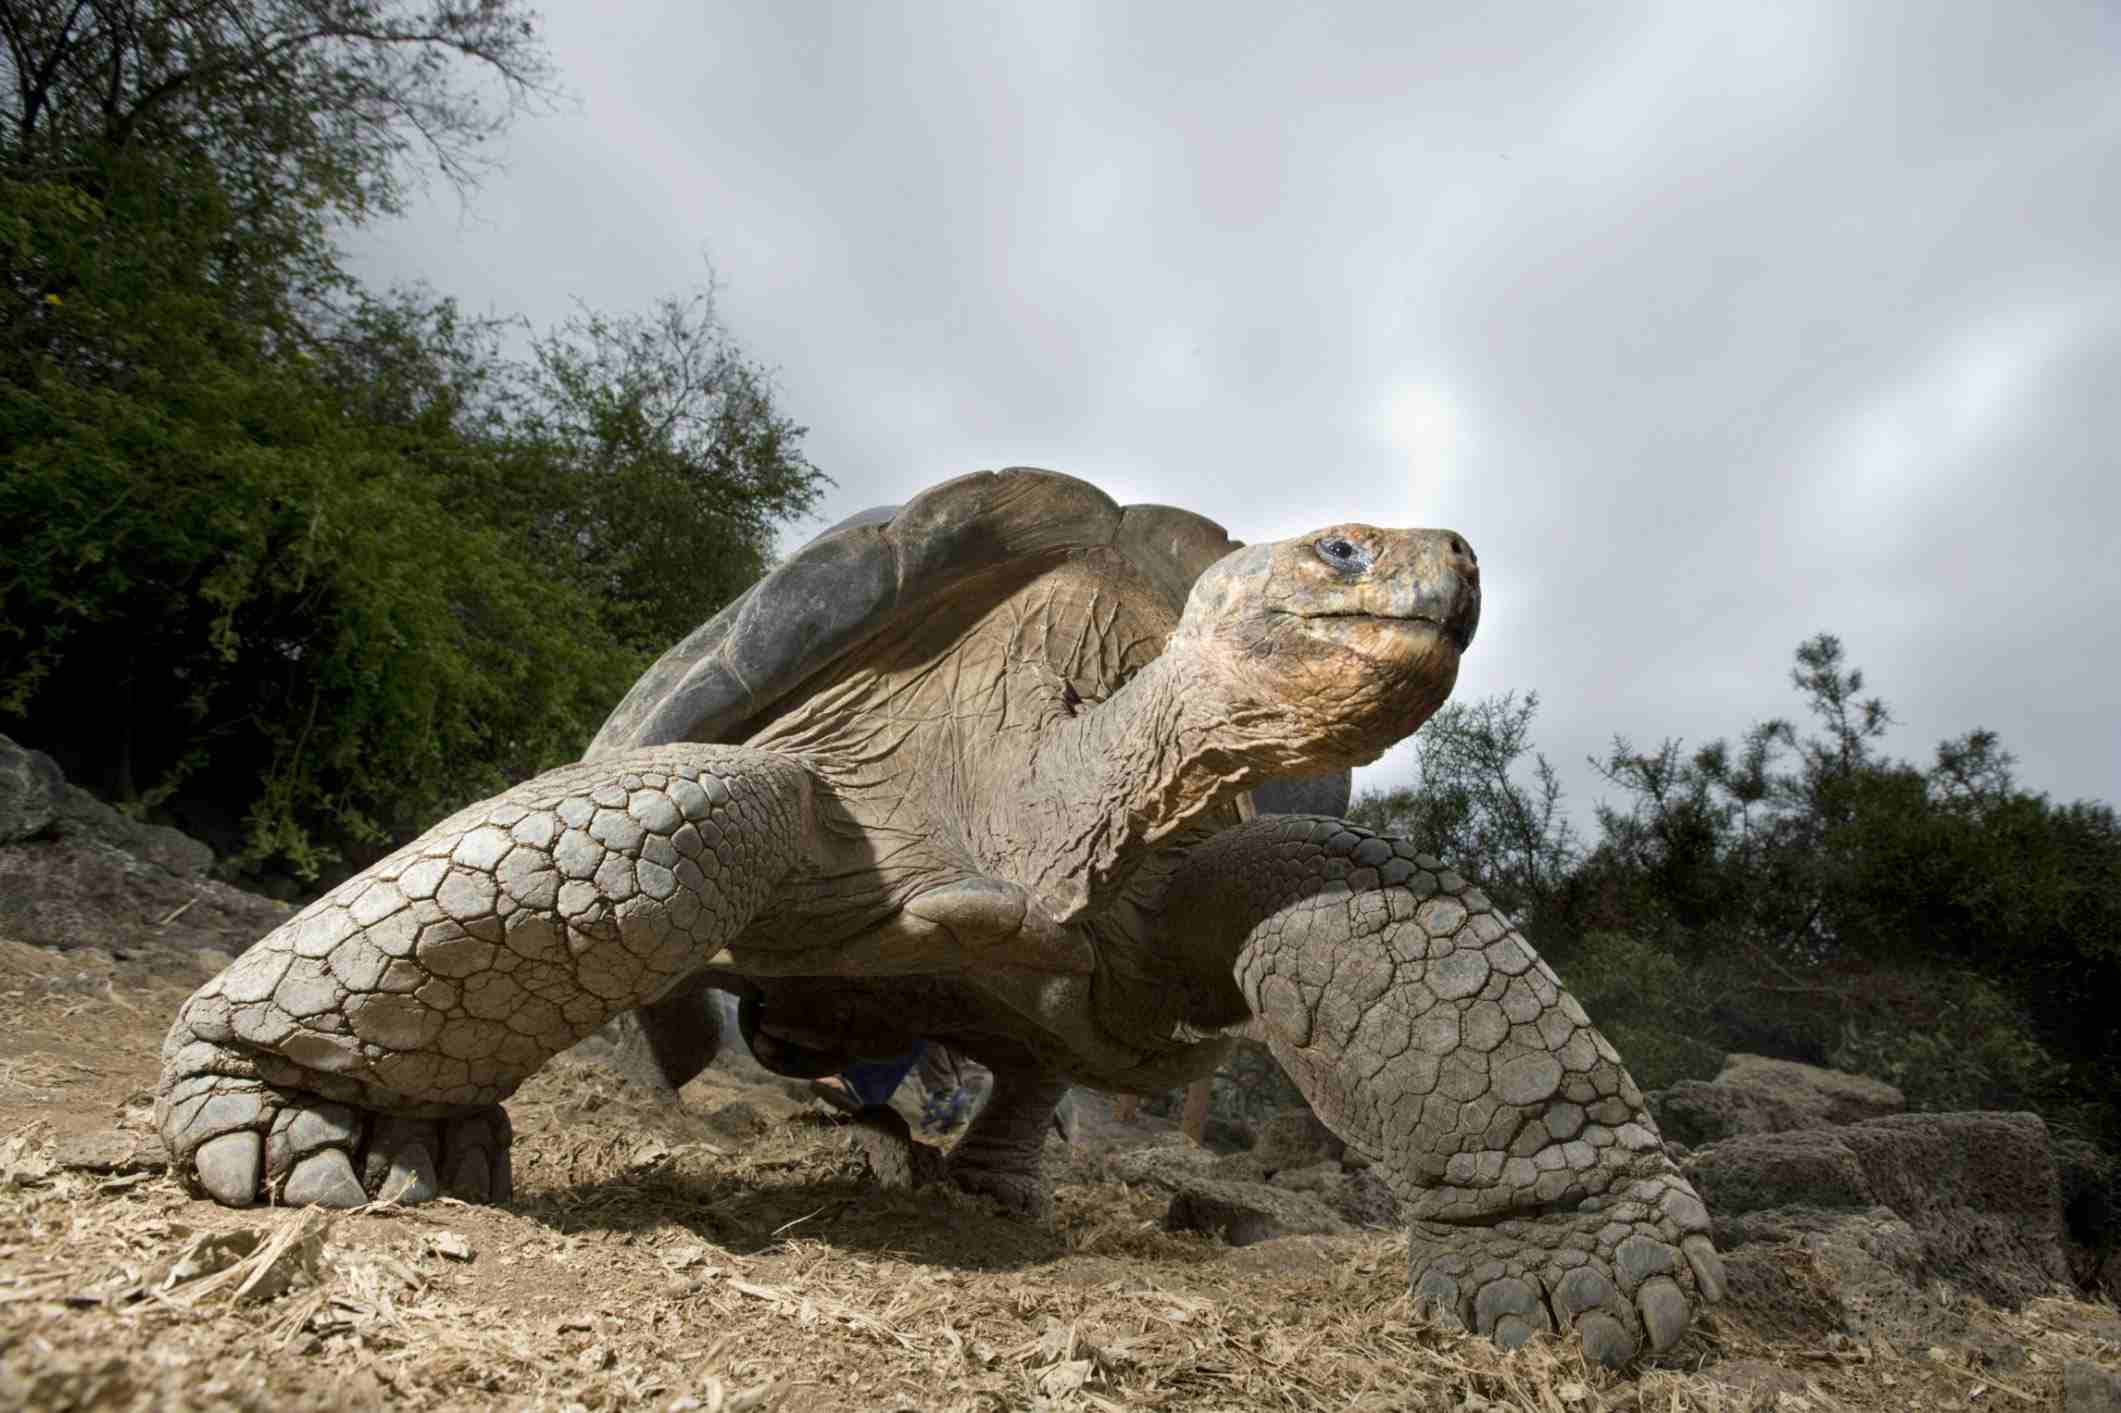 The Galapagos Islands are among Ecuador's most popular destinations for travelers.